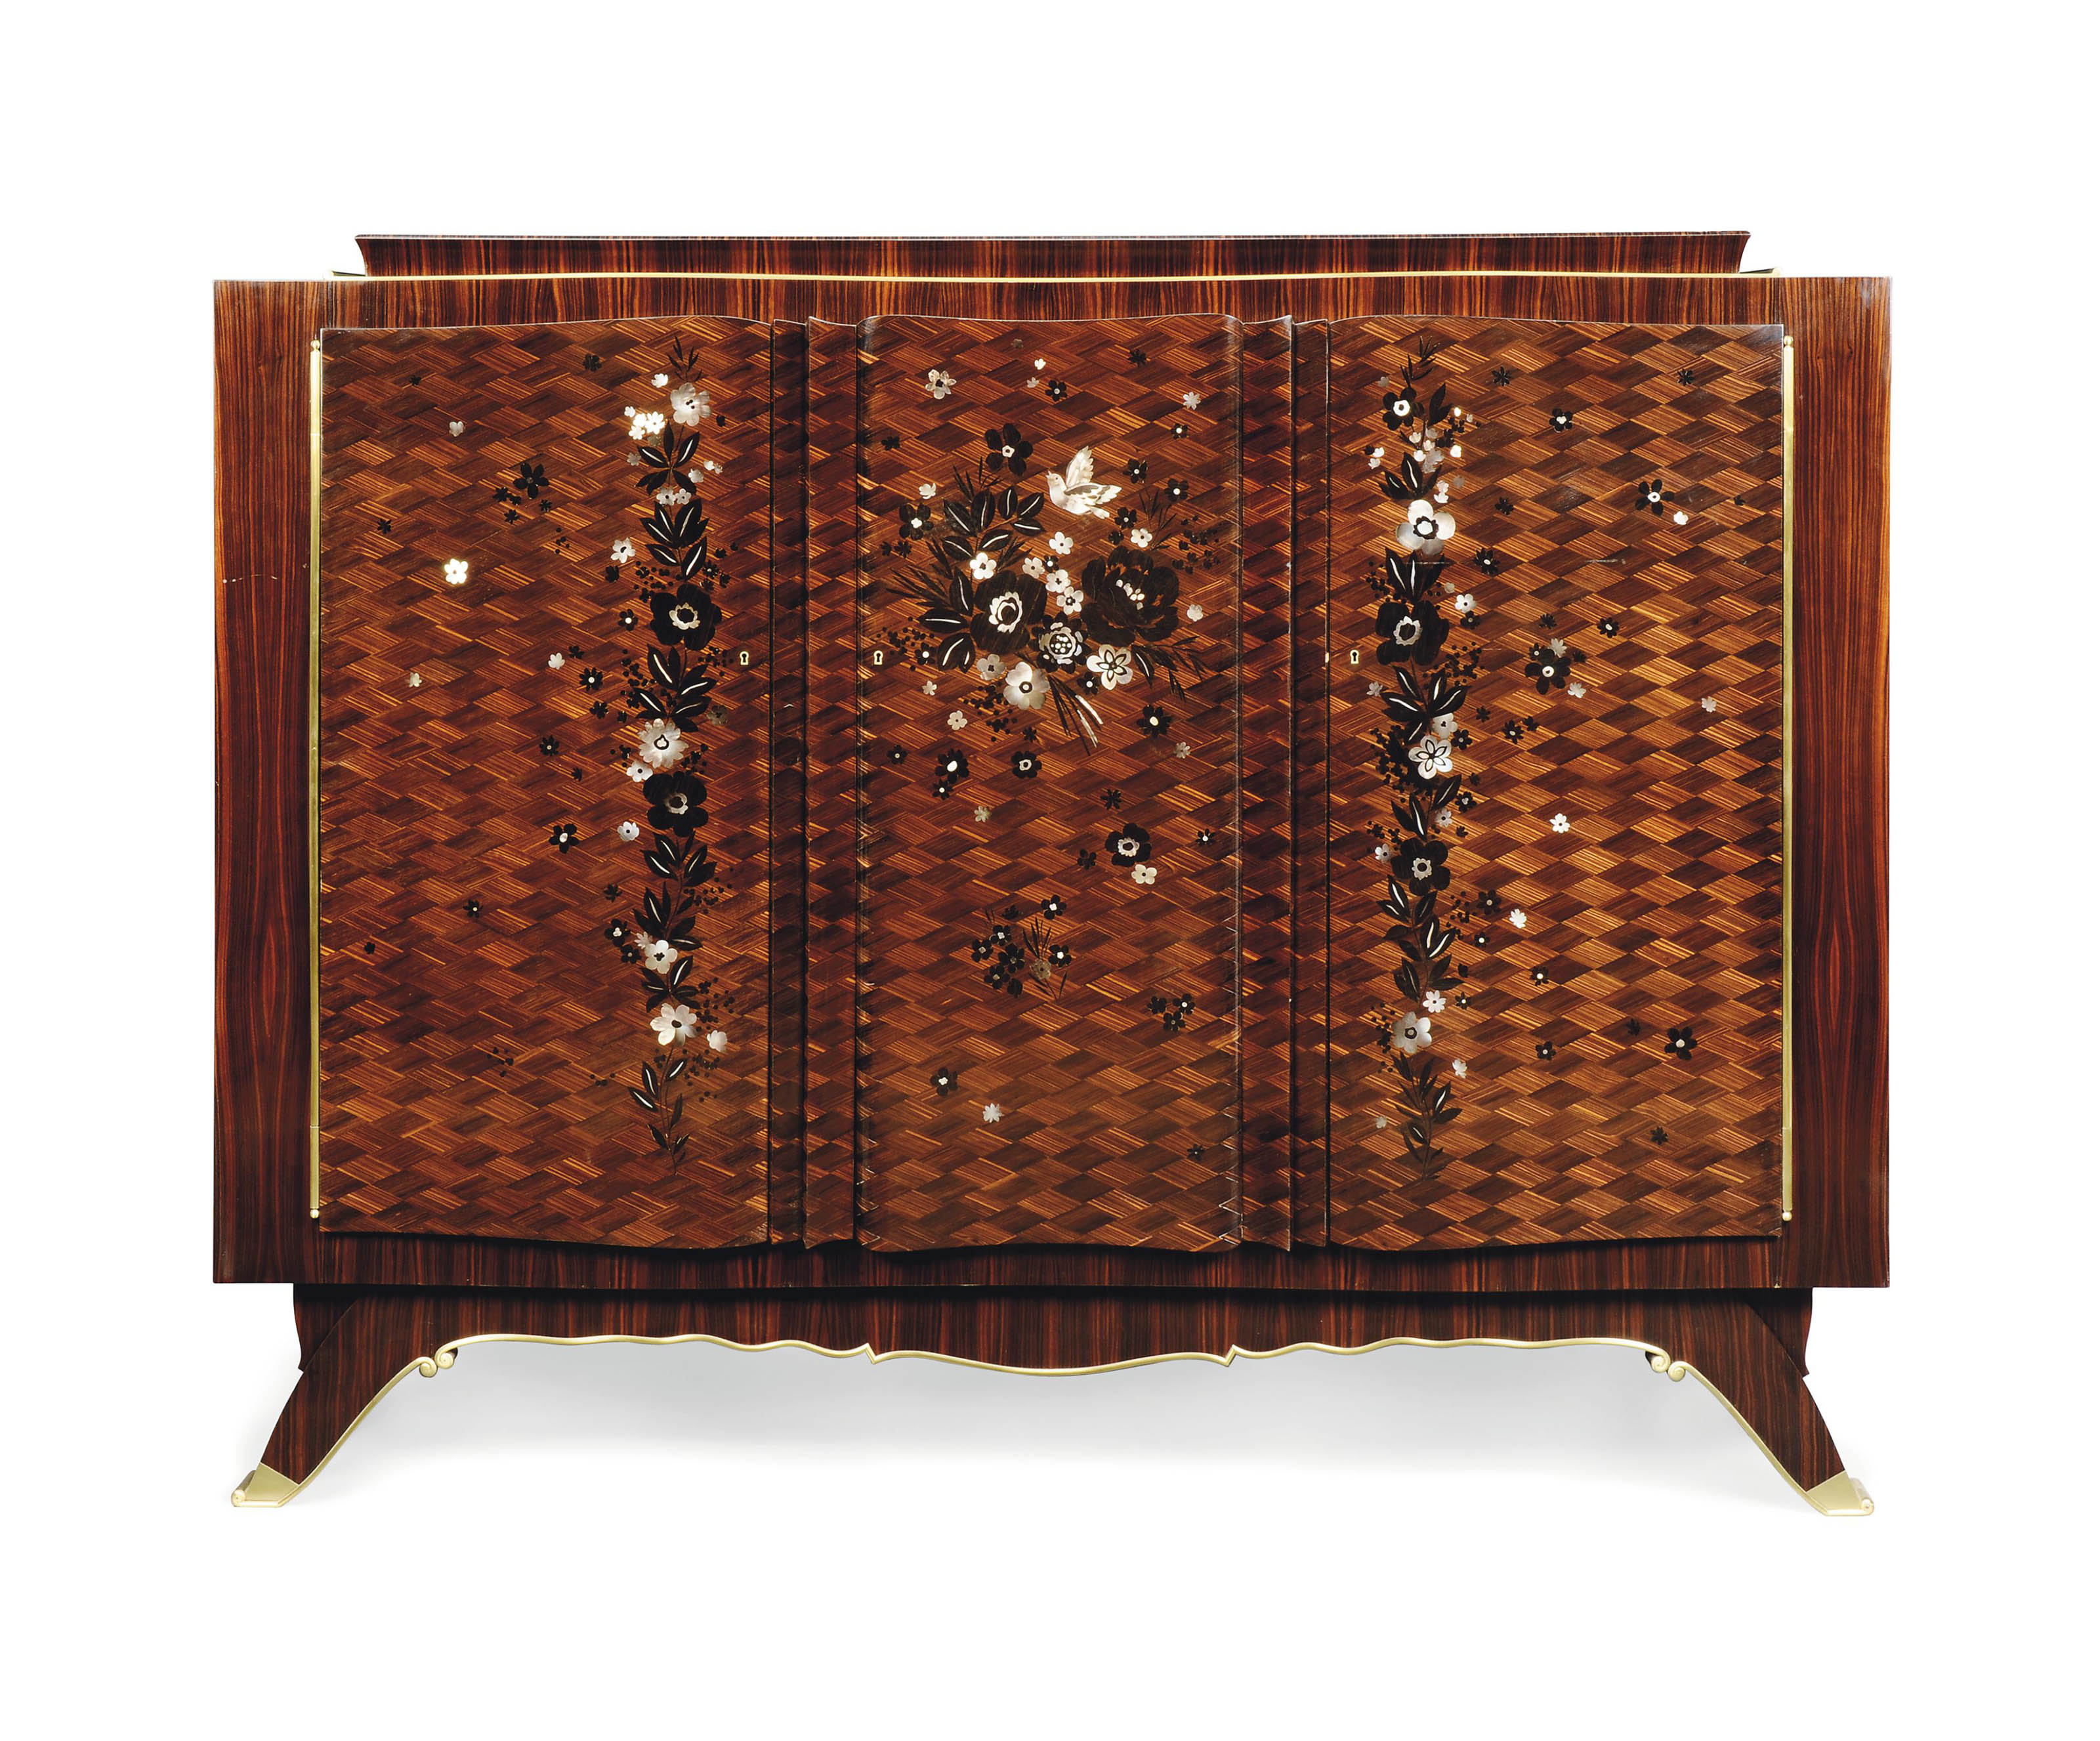 A JULES LELEU (1883-1961) ROSEWOOD PARQUETRY AND MOTHER-OF-PEARL INLAID CABINET